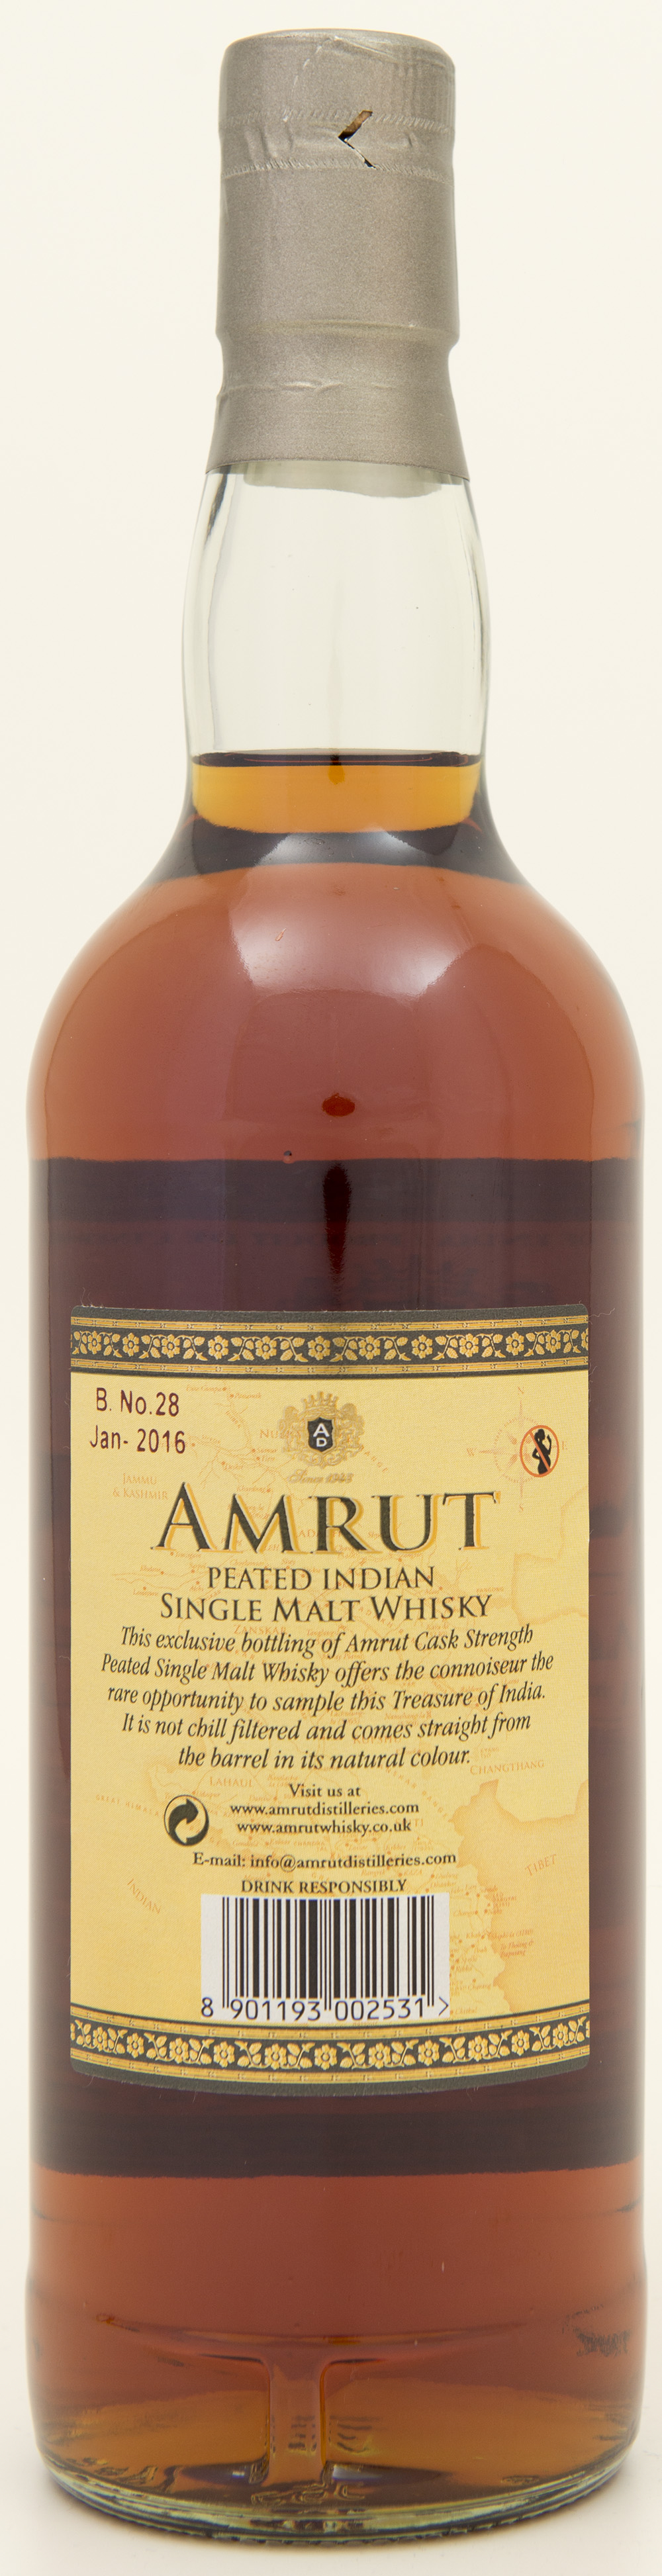 Billede: DSC_1386 - Amrut Peated Cask Strength - bottle back.jpg